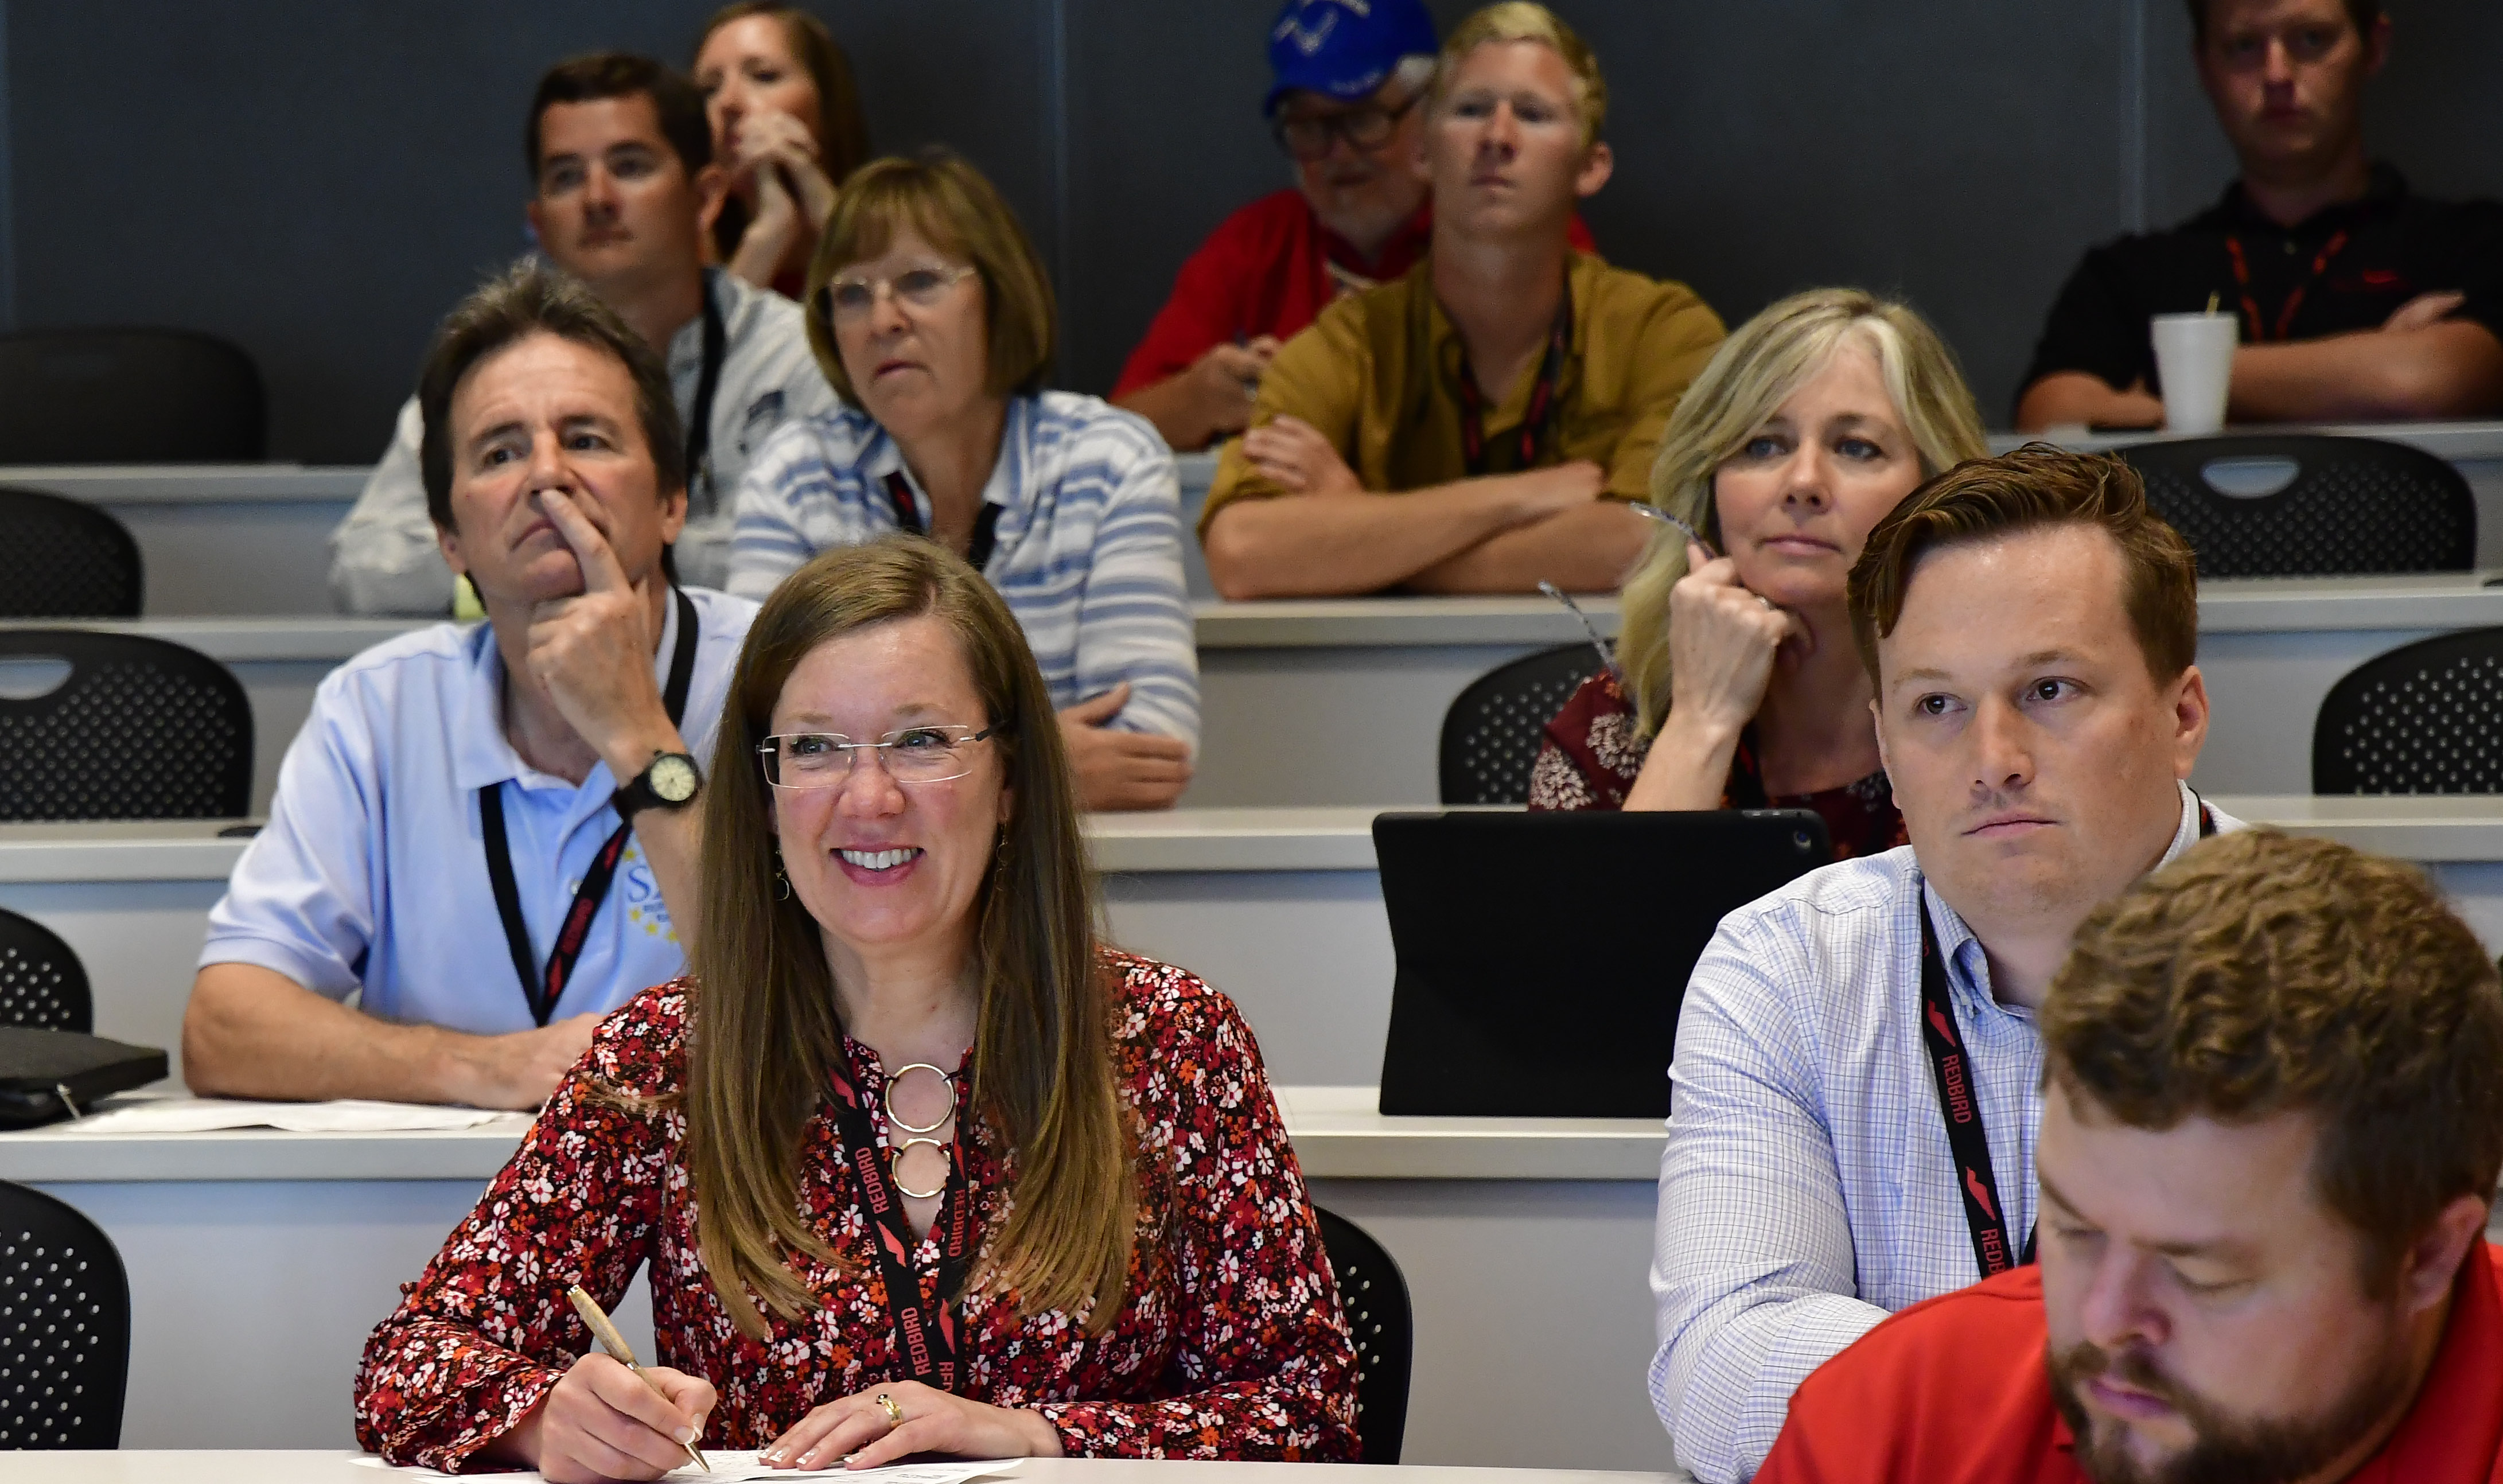 SkyTrek Alaska founder Jamie Patterson-Simes takes notes during a Redbird Migration customer service presentation at the AOPA You Can Fly Academy in Frederick, Maryland, Oct. 10, 2018. She earned the 2017 AOPA Flight Training Experience Award for best flight school. Photo by David Tulis.